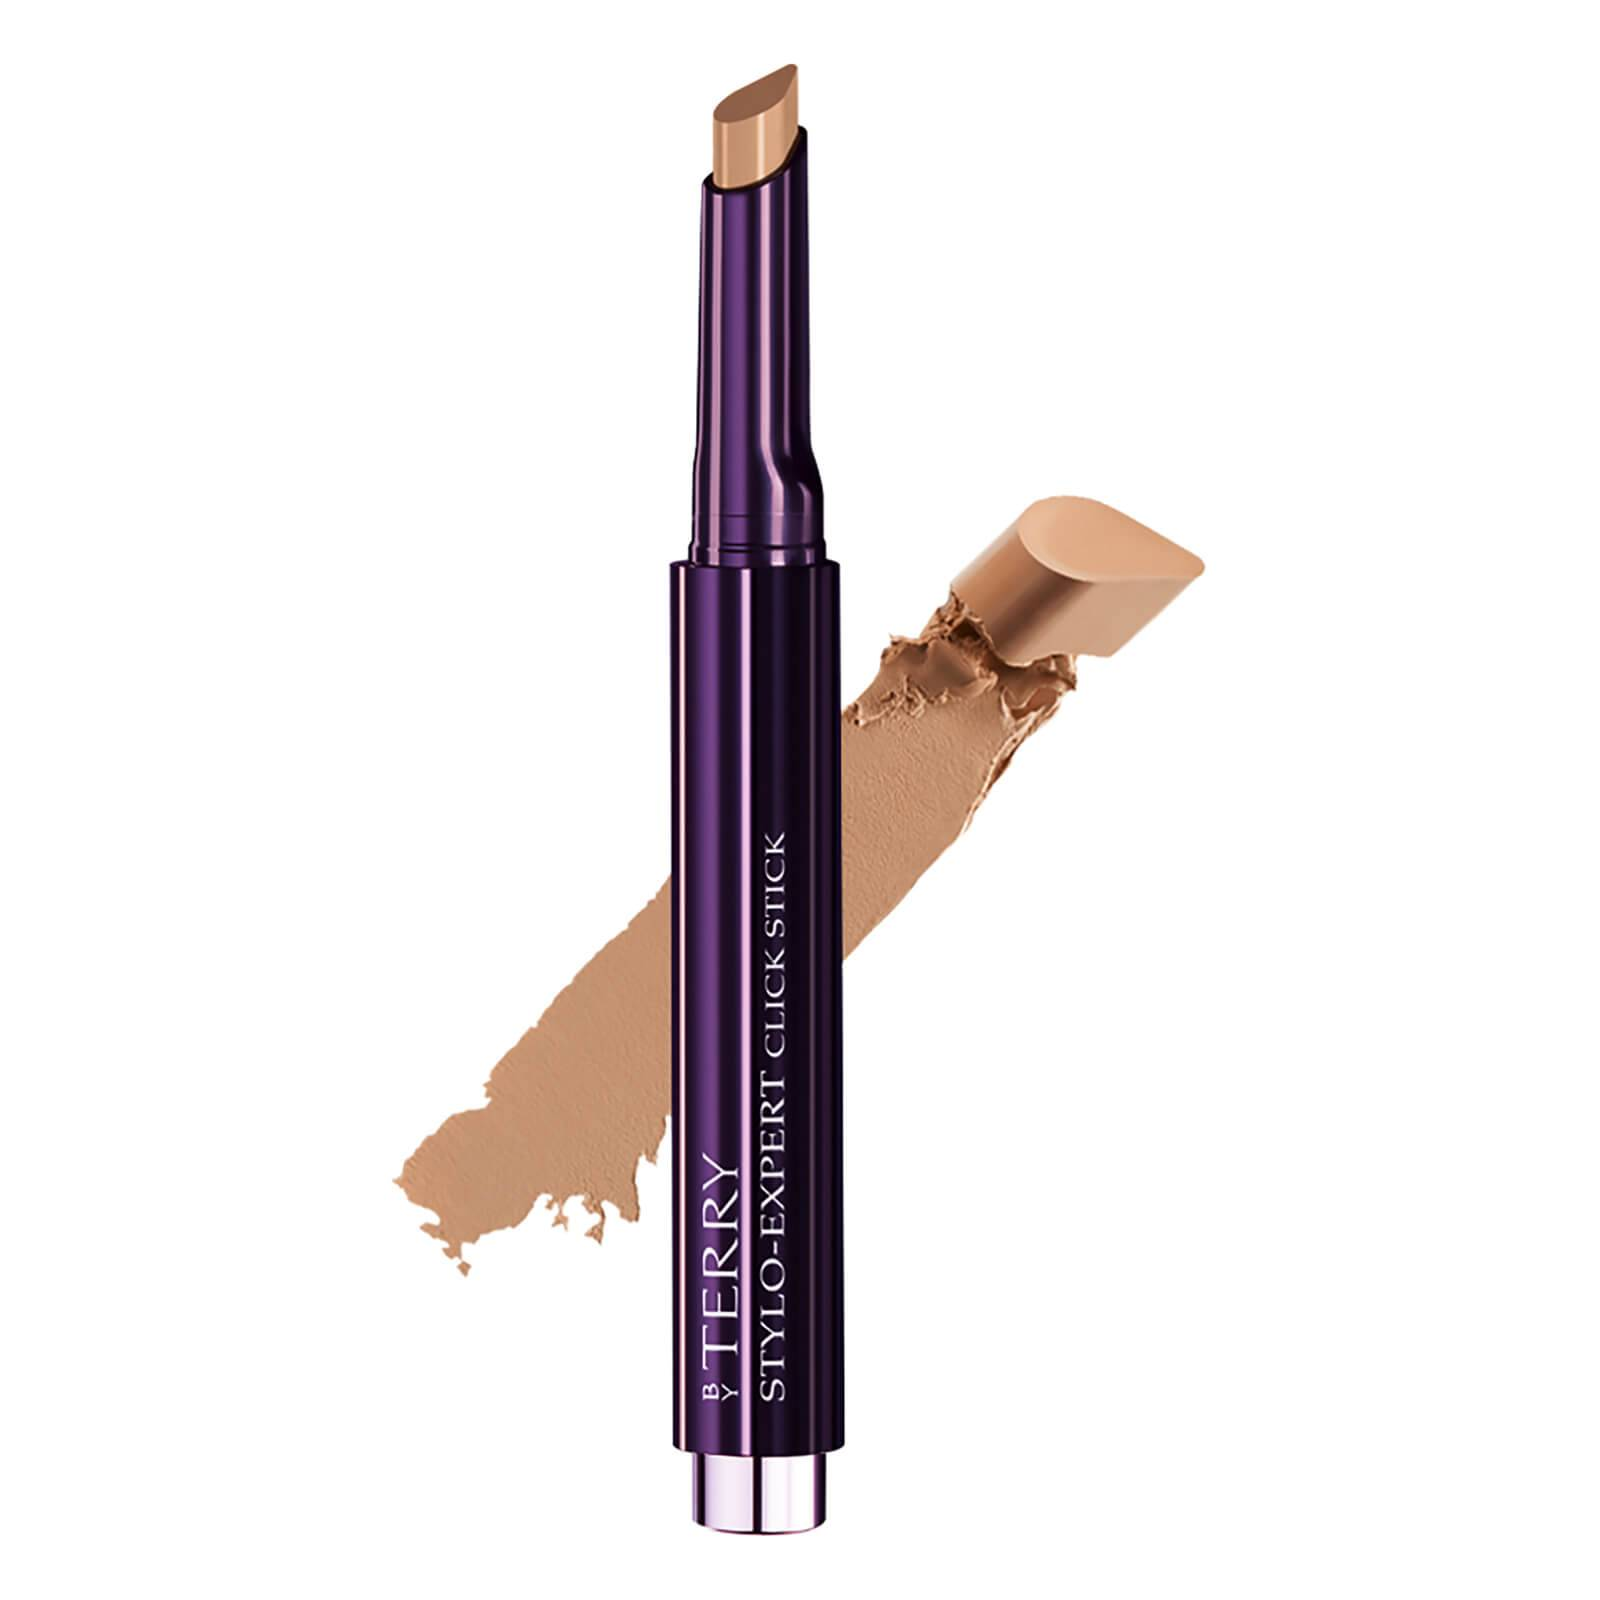 By Terry Stylo-Expert Click Stick Concealer 1g (Various Shades) - No.11 Amber Brown